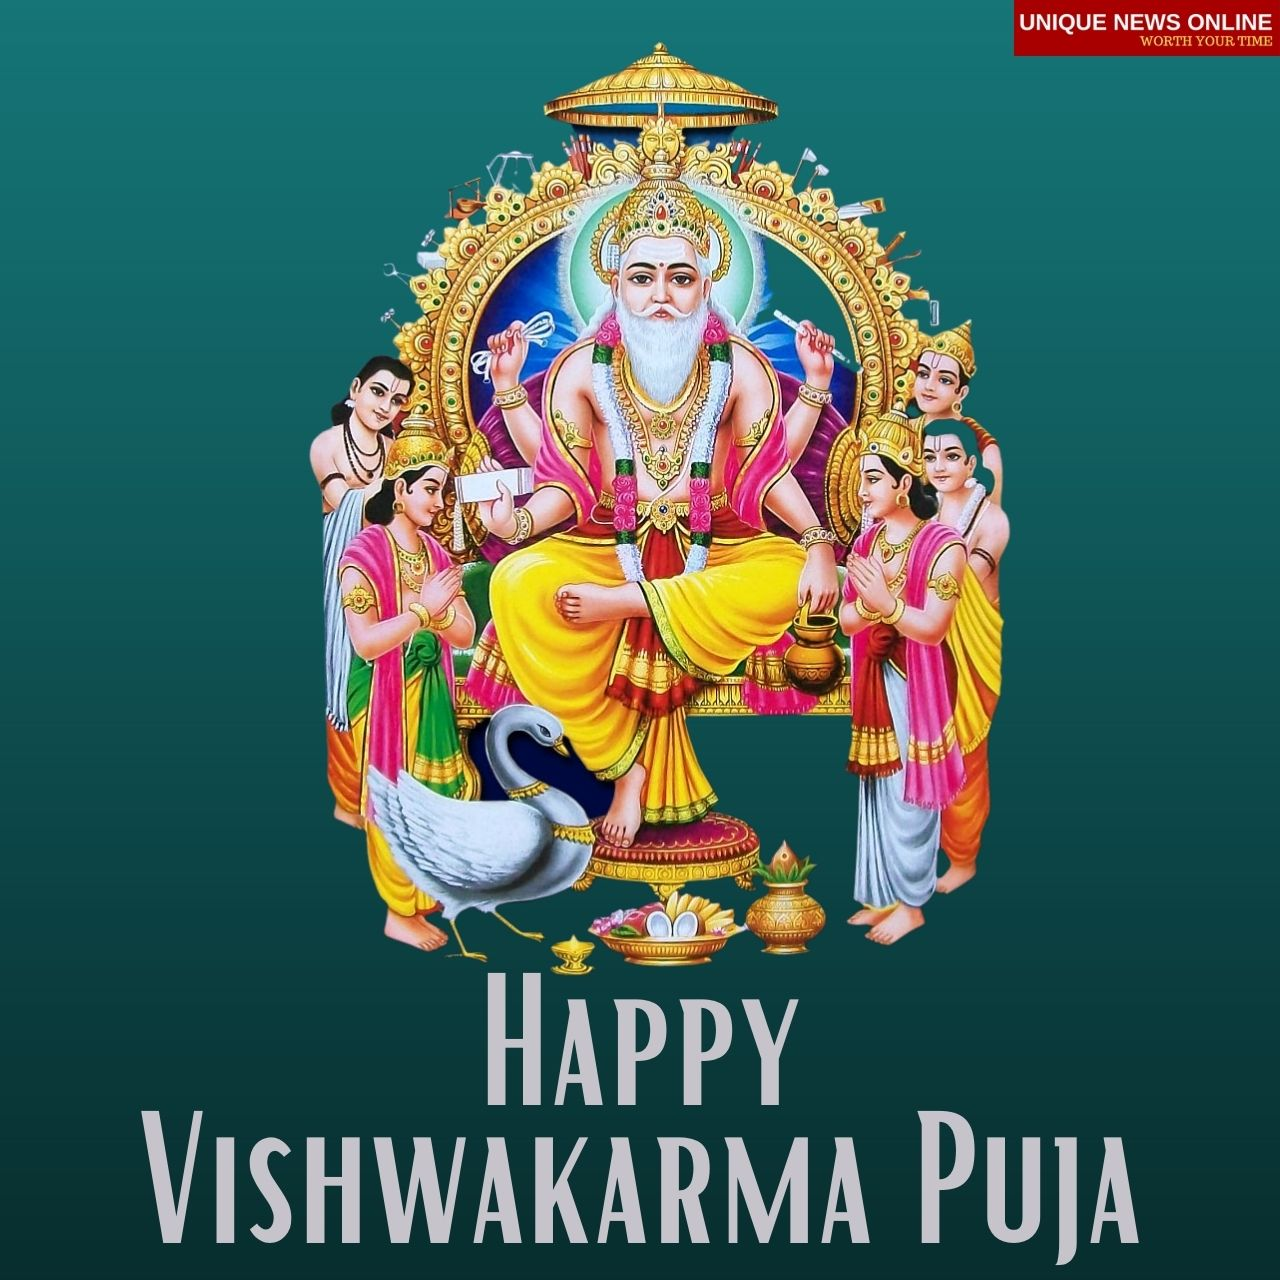 Happy Vishwakarma Puja 2021 Wishes, Quotes, HD Images, Messages, and Greetings to Share